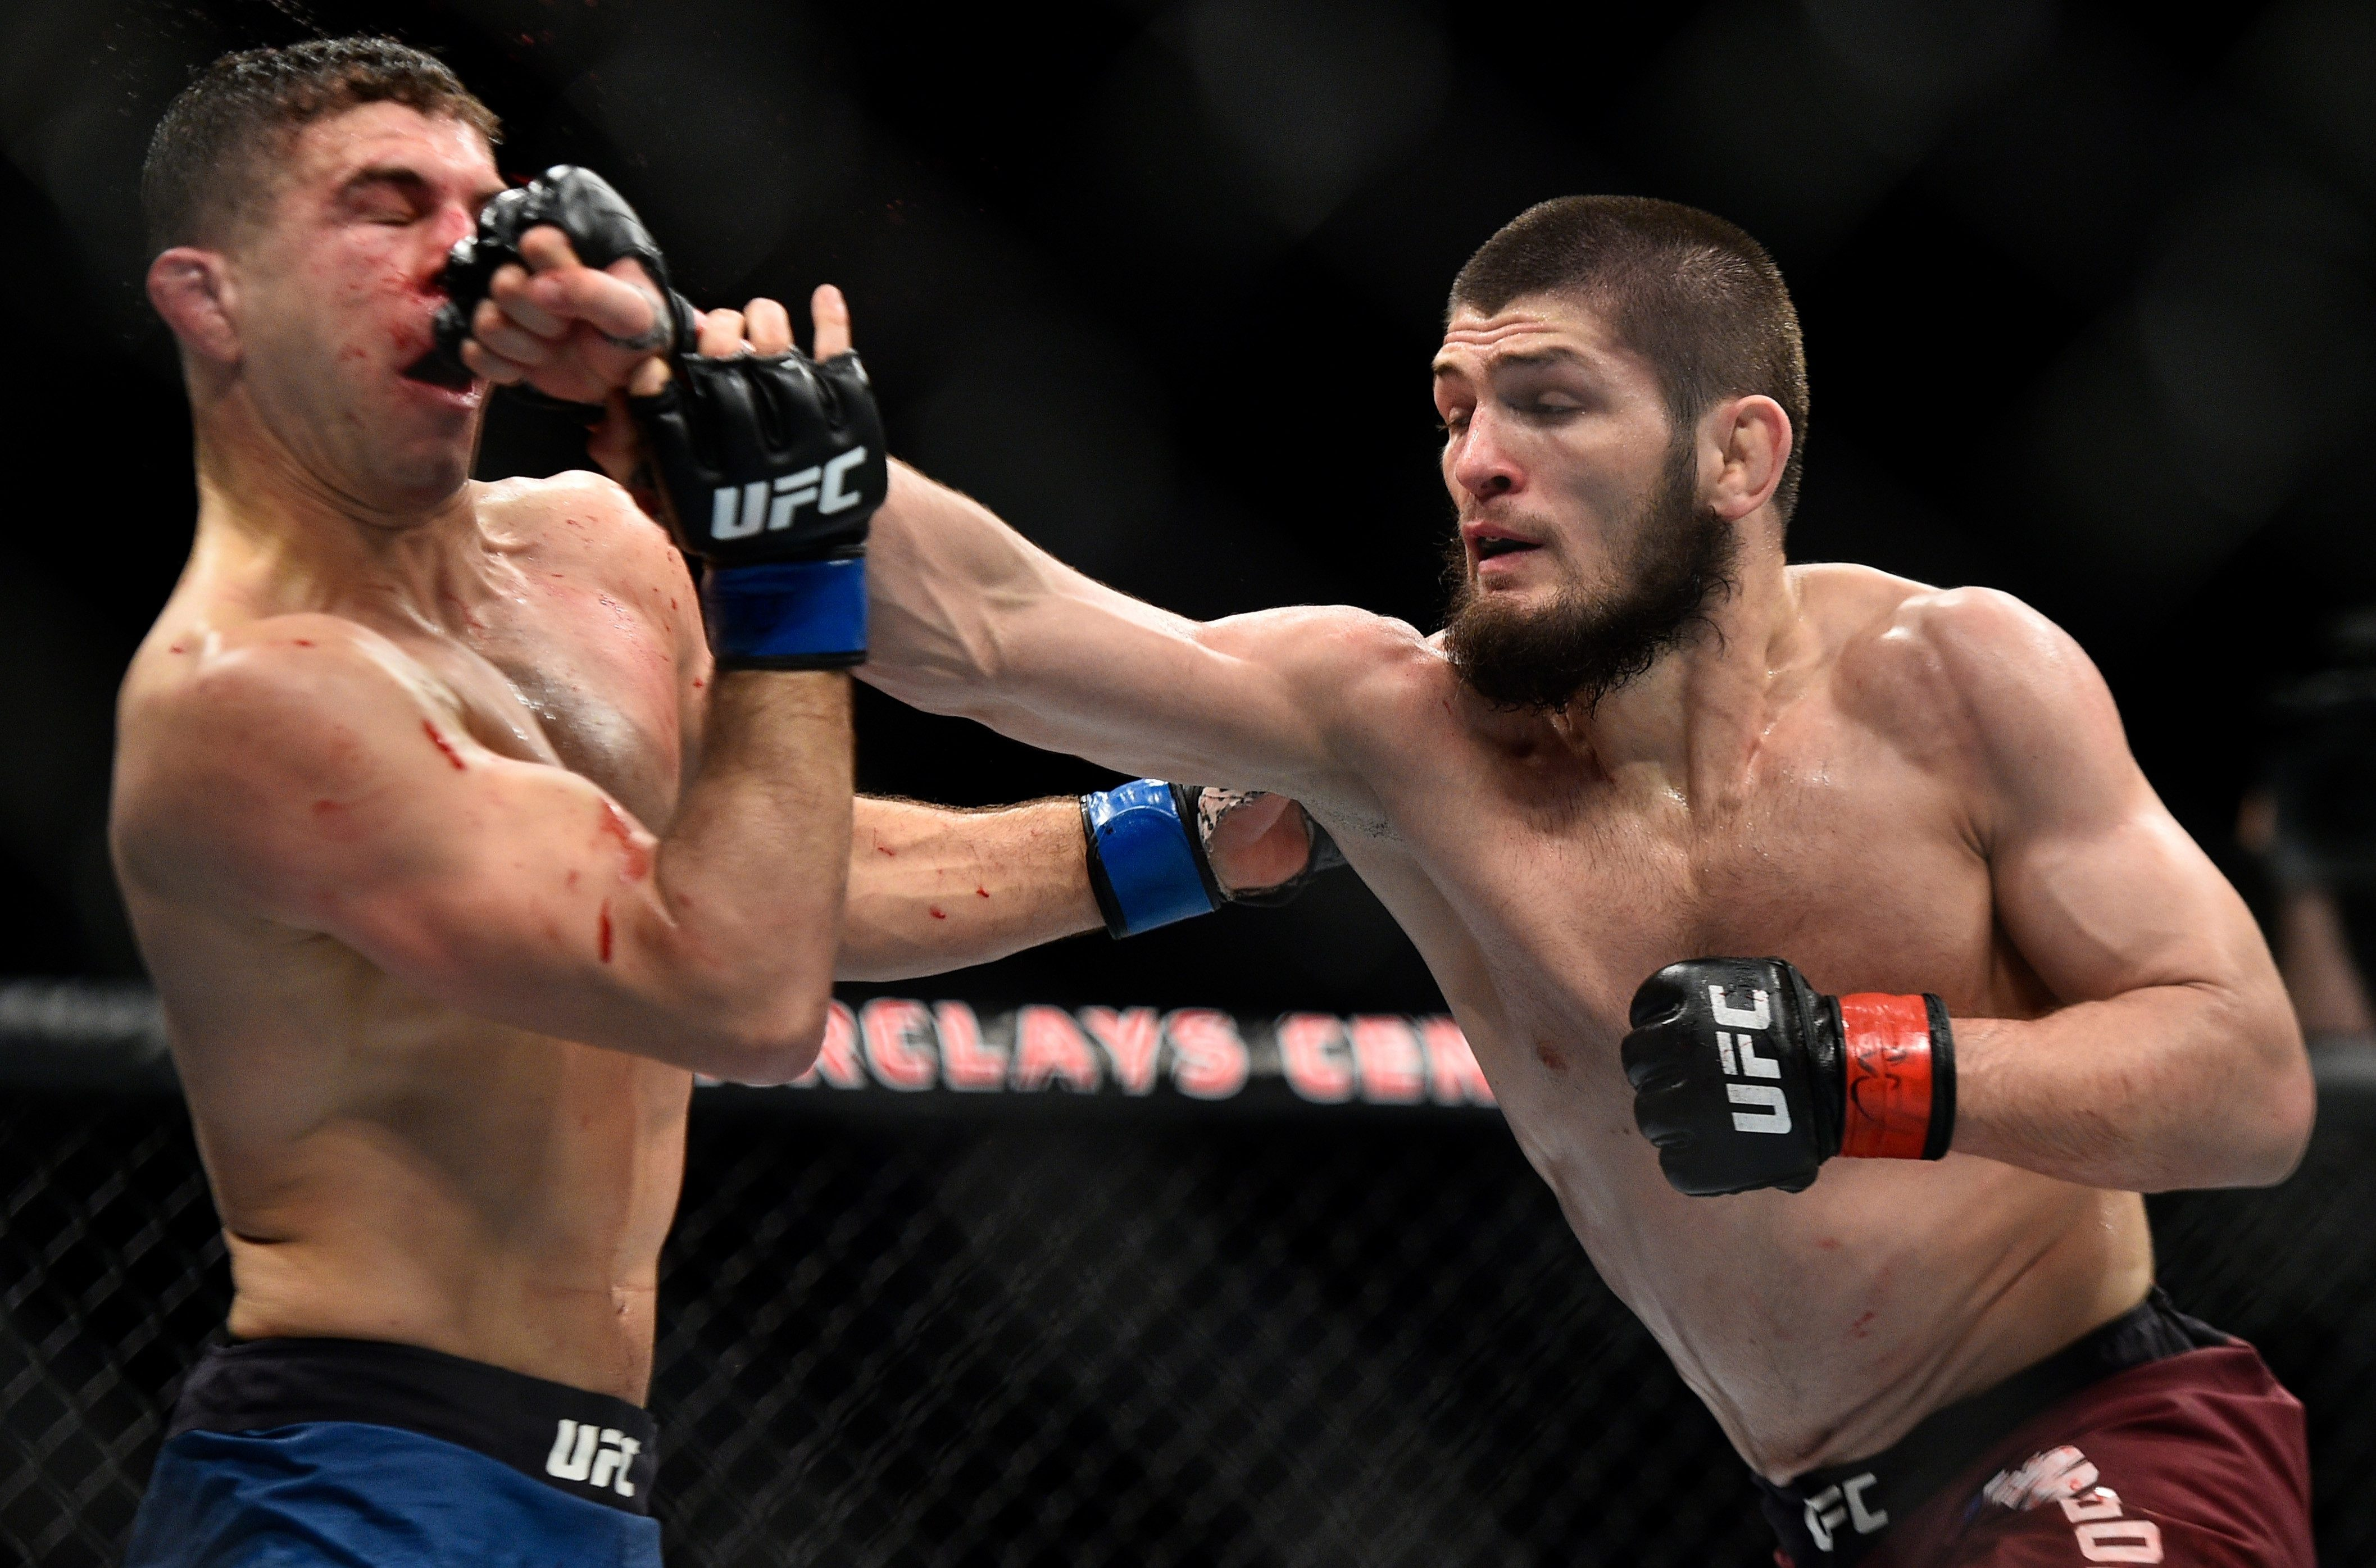 Al Iaquinta (left) looks to beat Donald Cerrone to get another shot at Khabib Nurmagomedov after losing to the lightweight champion in April 2018